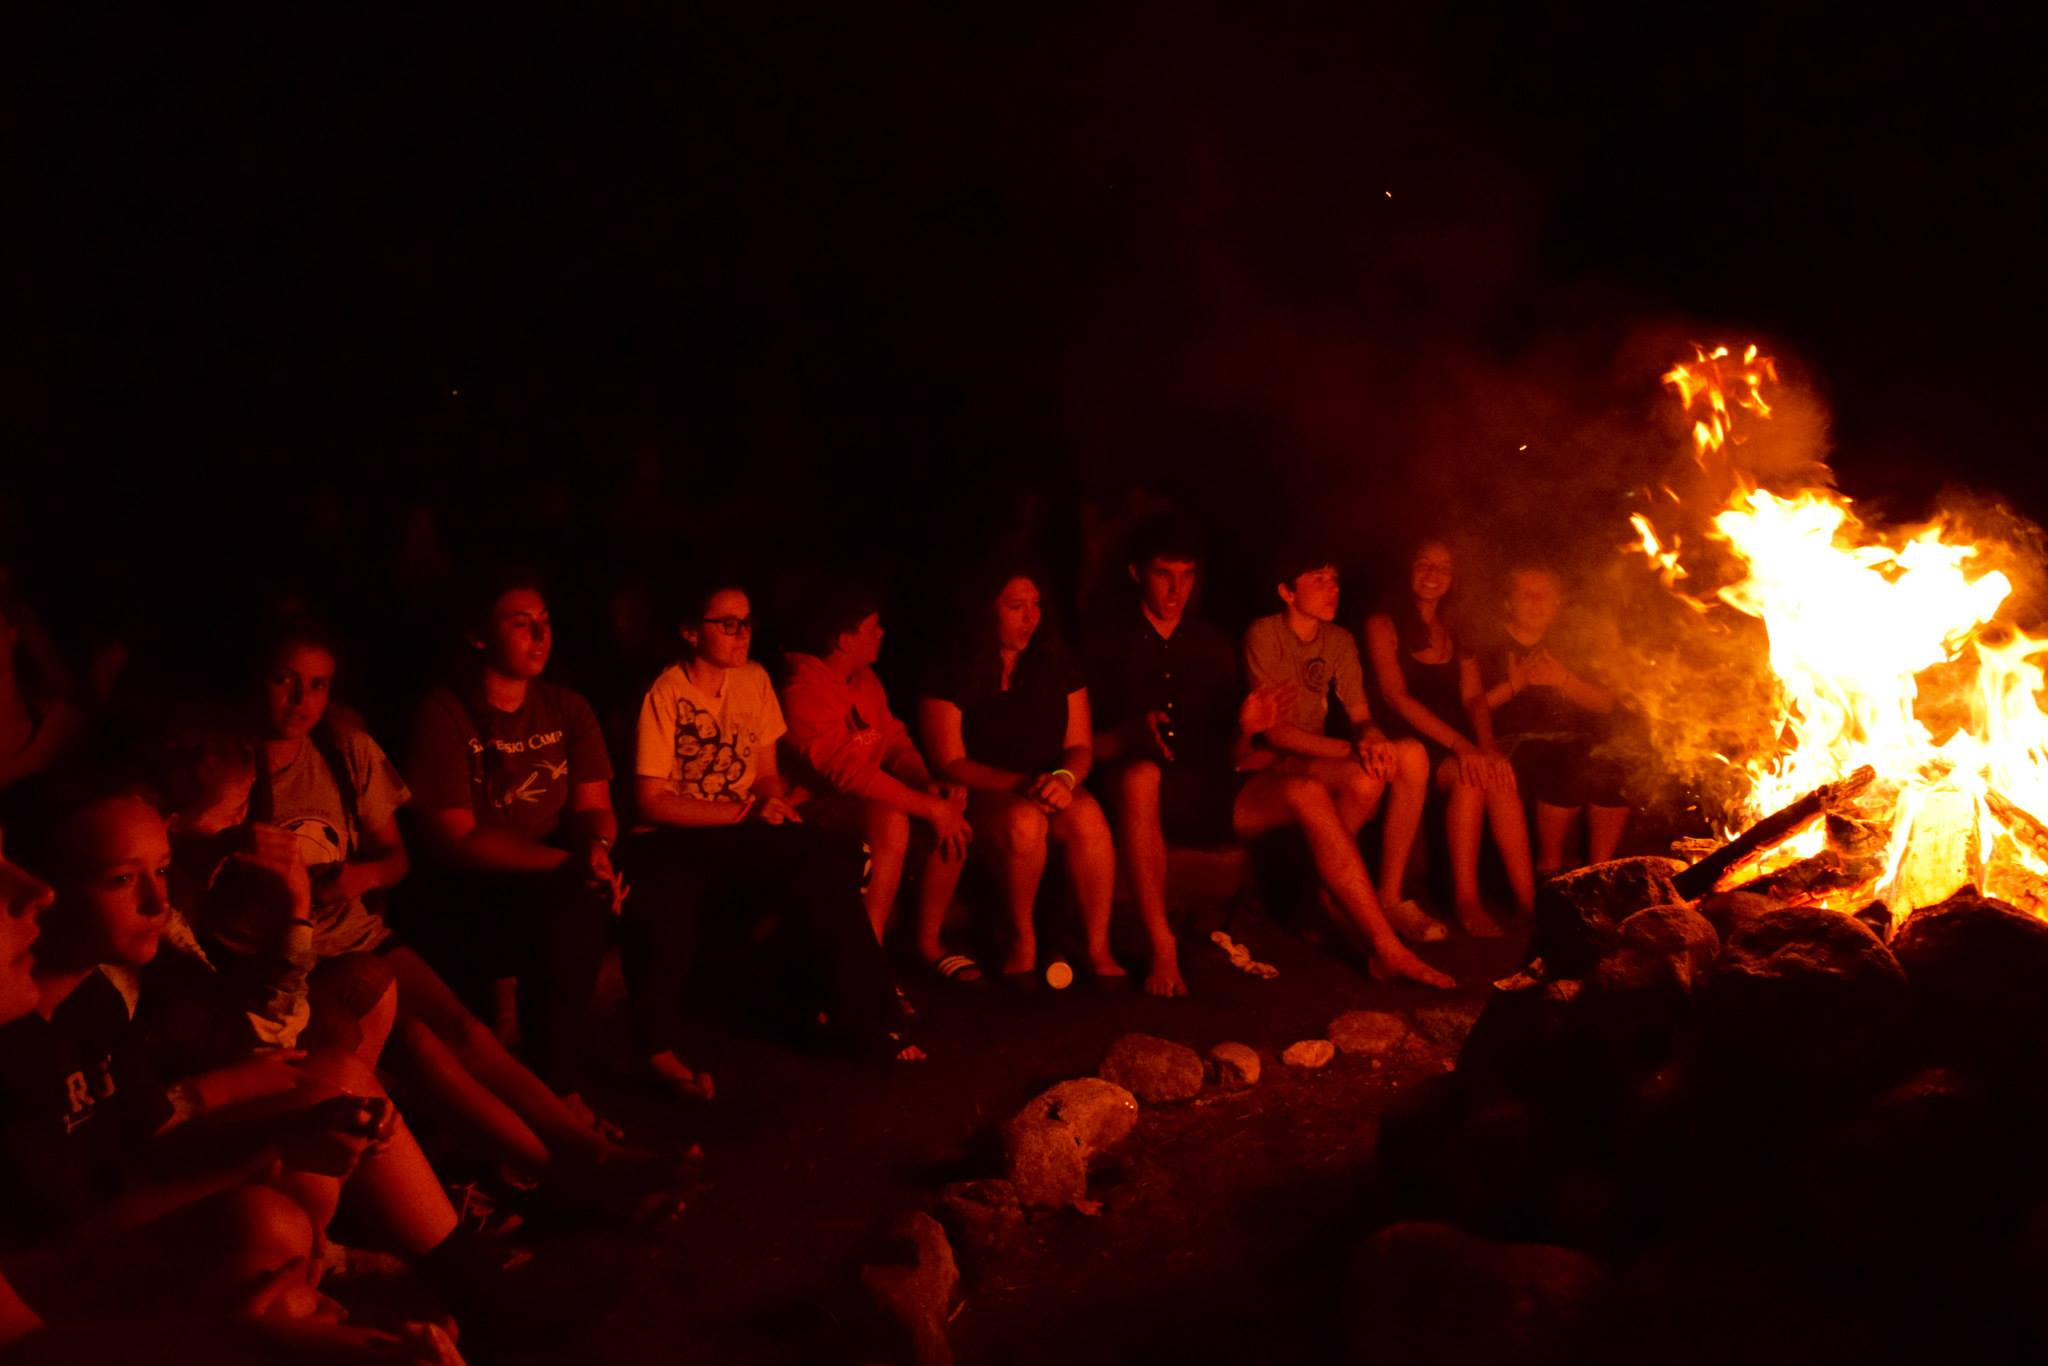 Campers singing around a roaring fire sitting on log benches